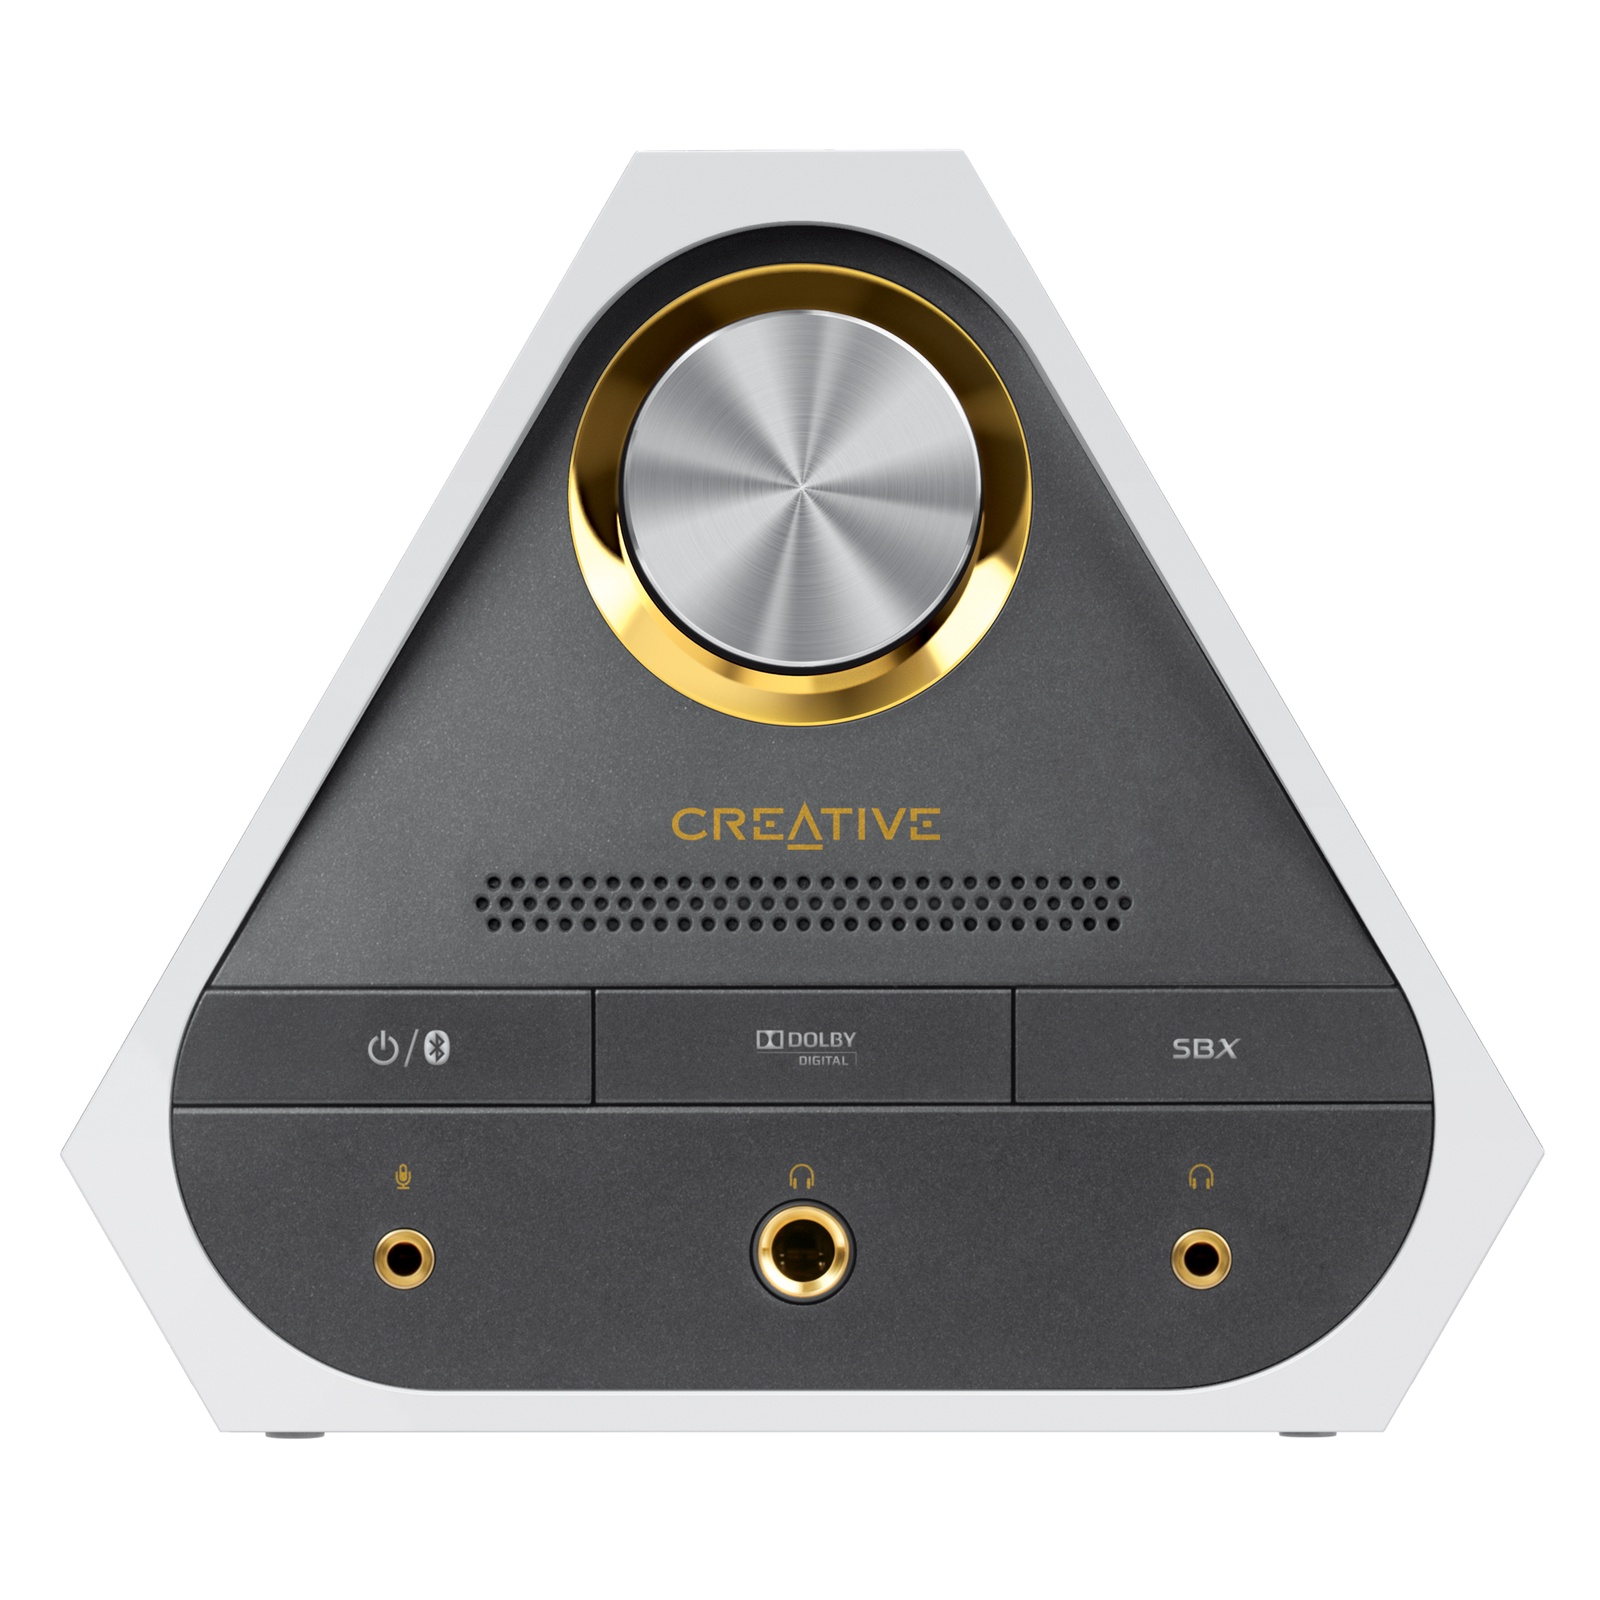 Звуковая карта Creative Sound Blaster X7 Limited Edition, белый